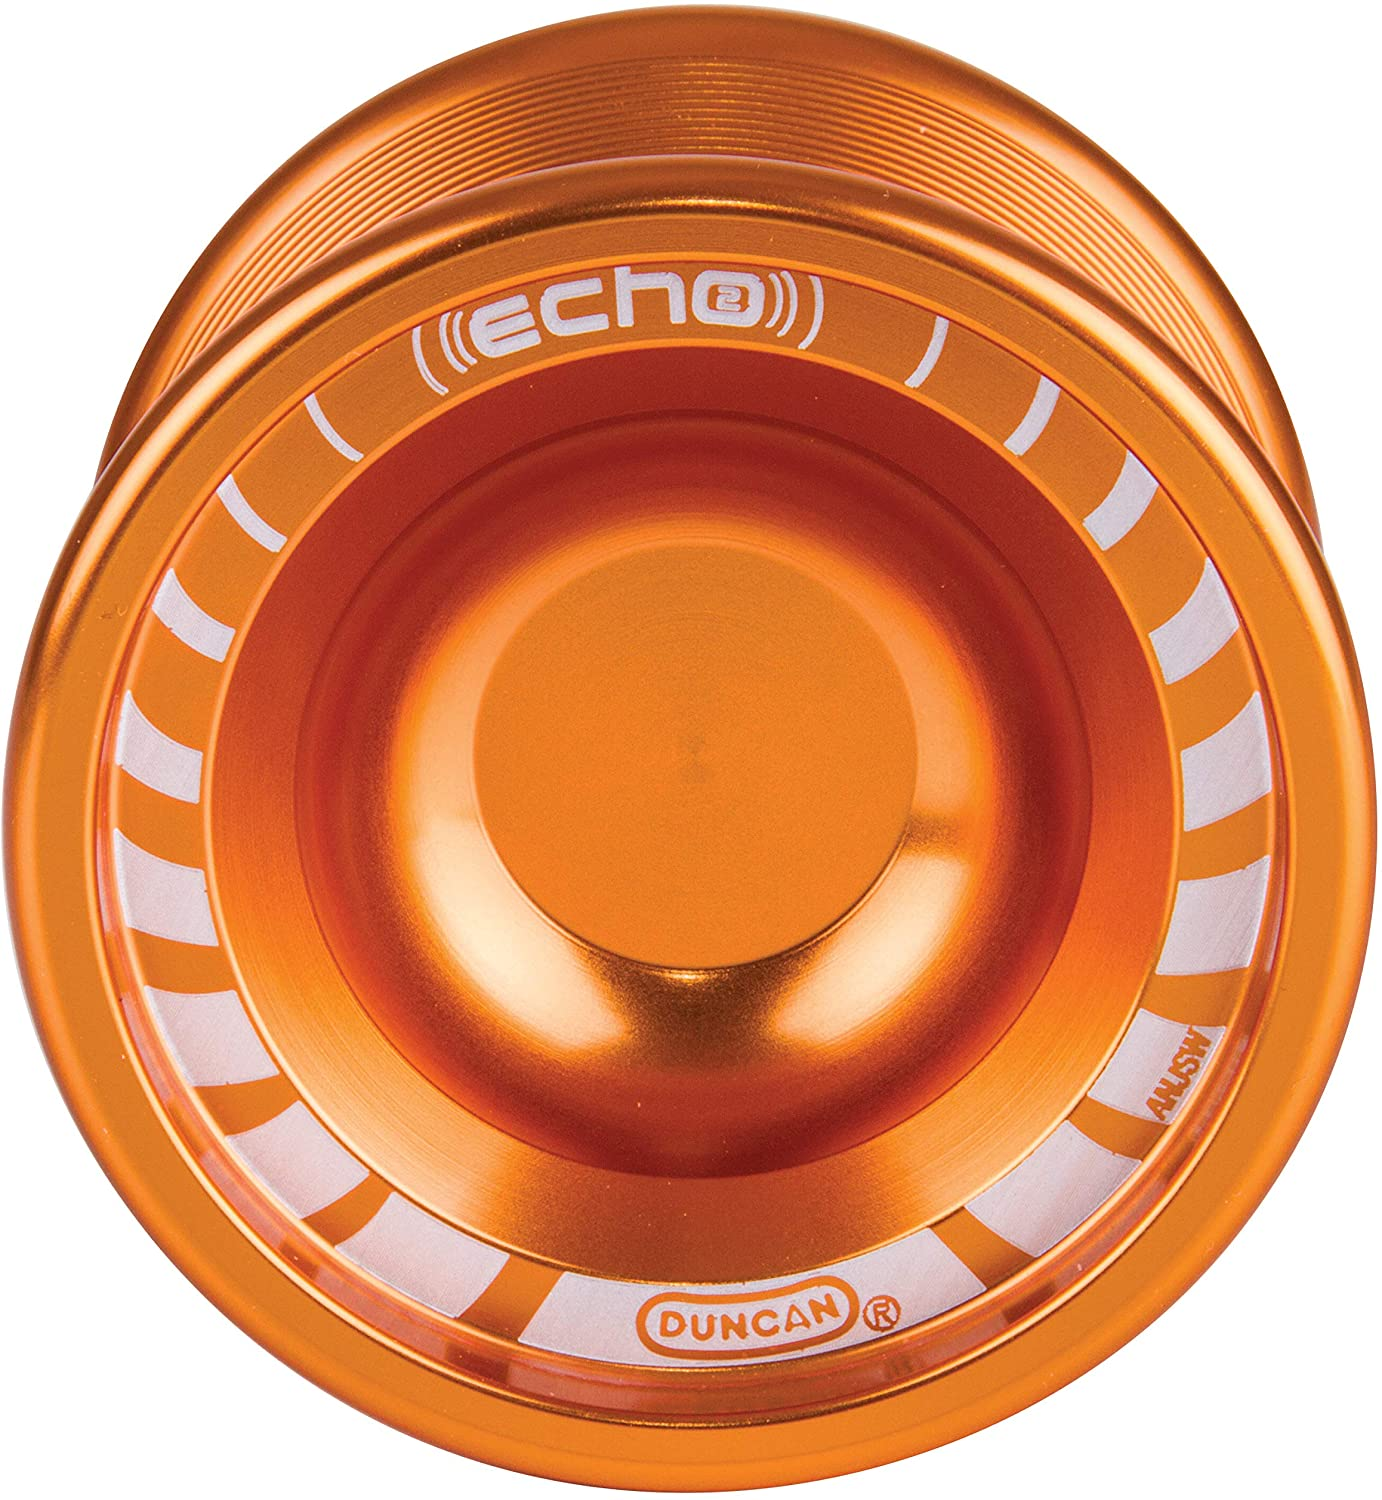 Duncan Toys Echo 2 Yo-Yo [Copper], Unresponsive Pro Level Yo-Yo, Concave Bearing